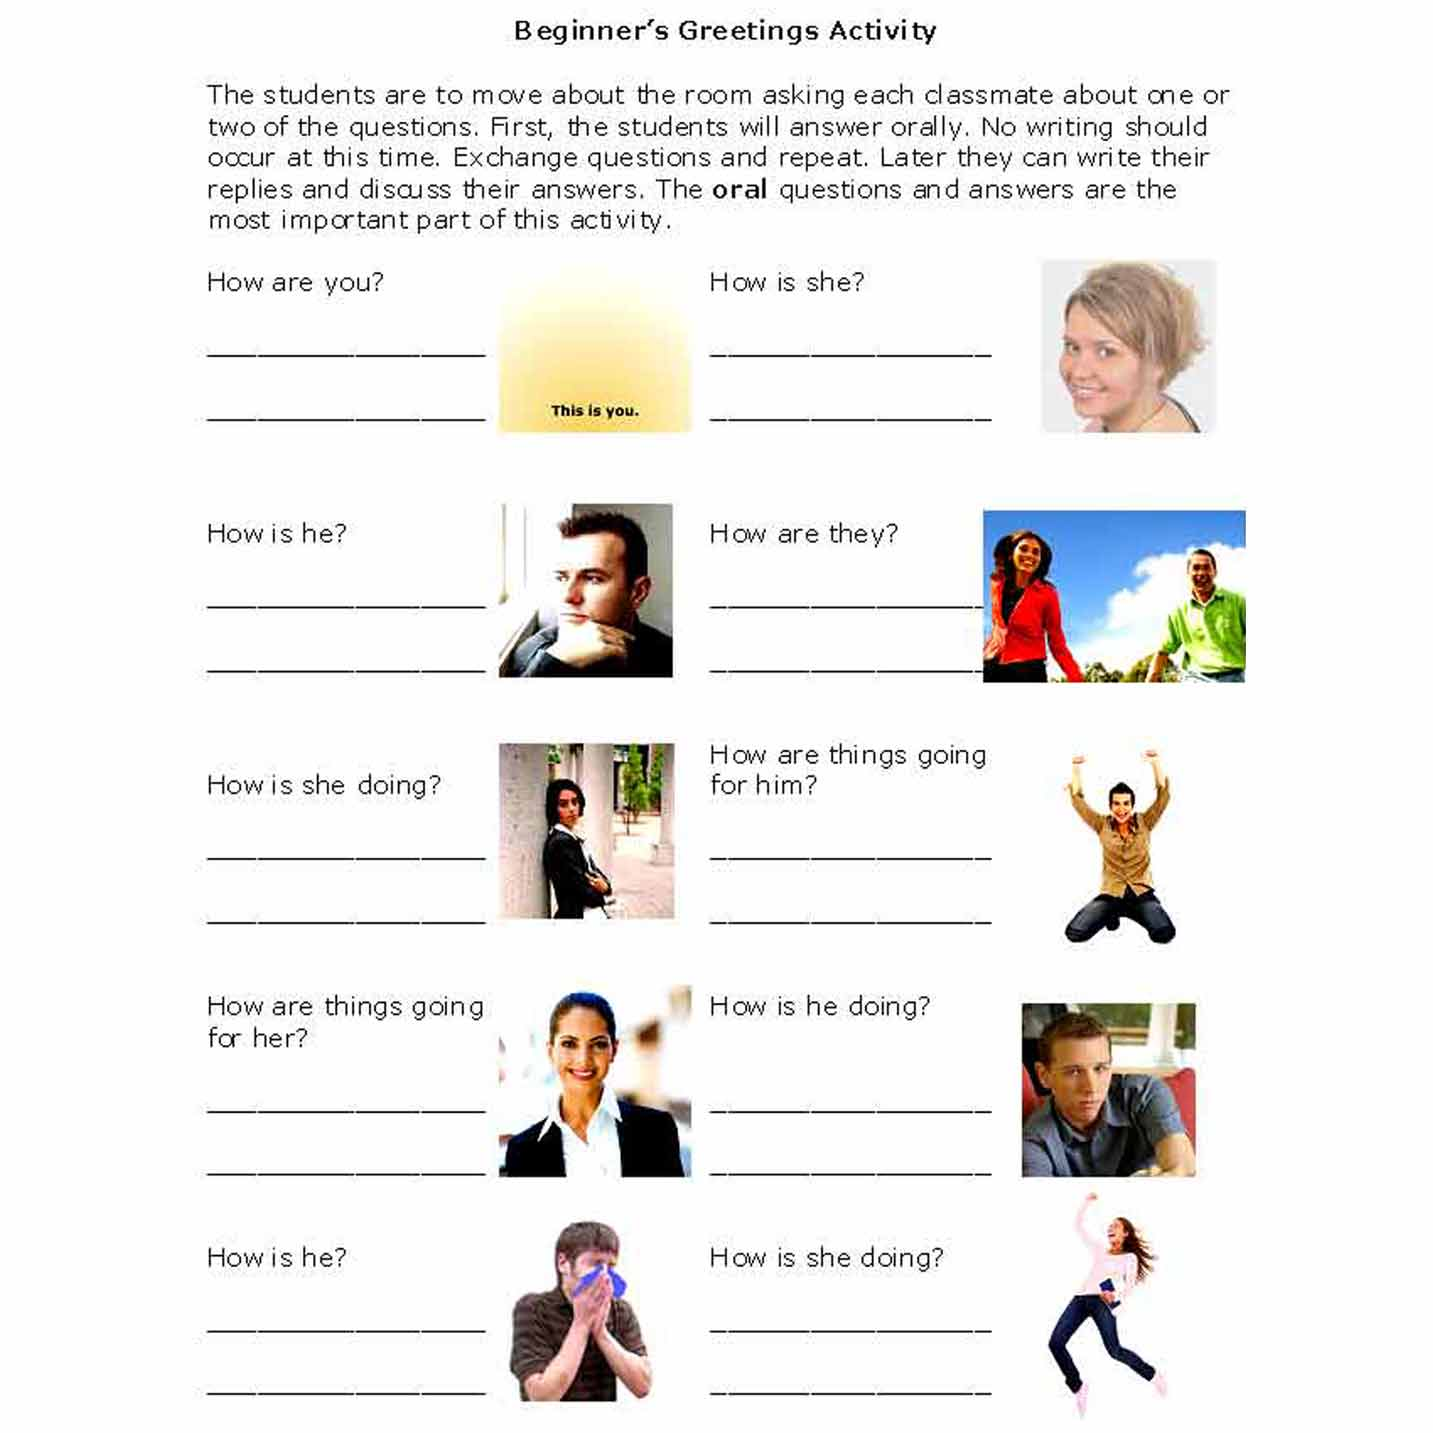 Activities that introduce beginners to friendly greetings greetings activity m4hsunfo